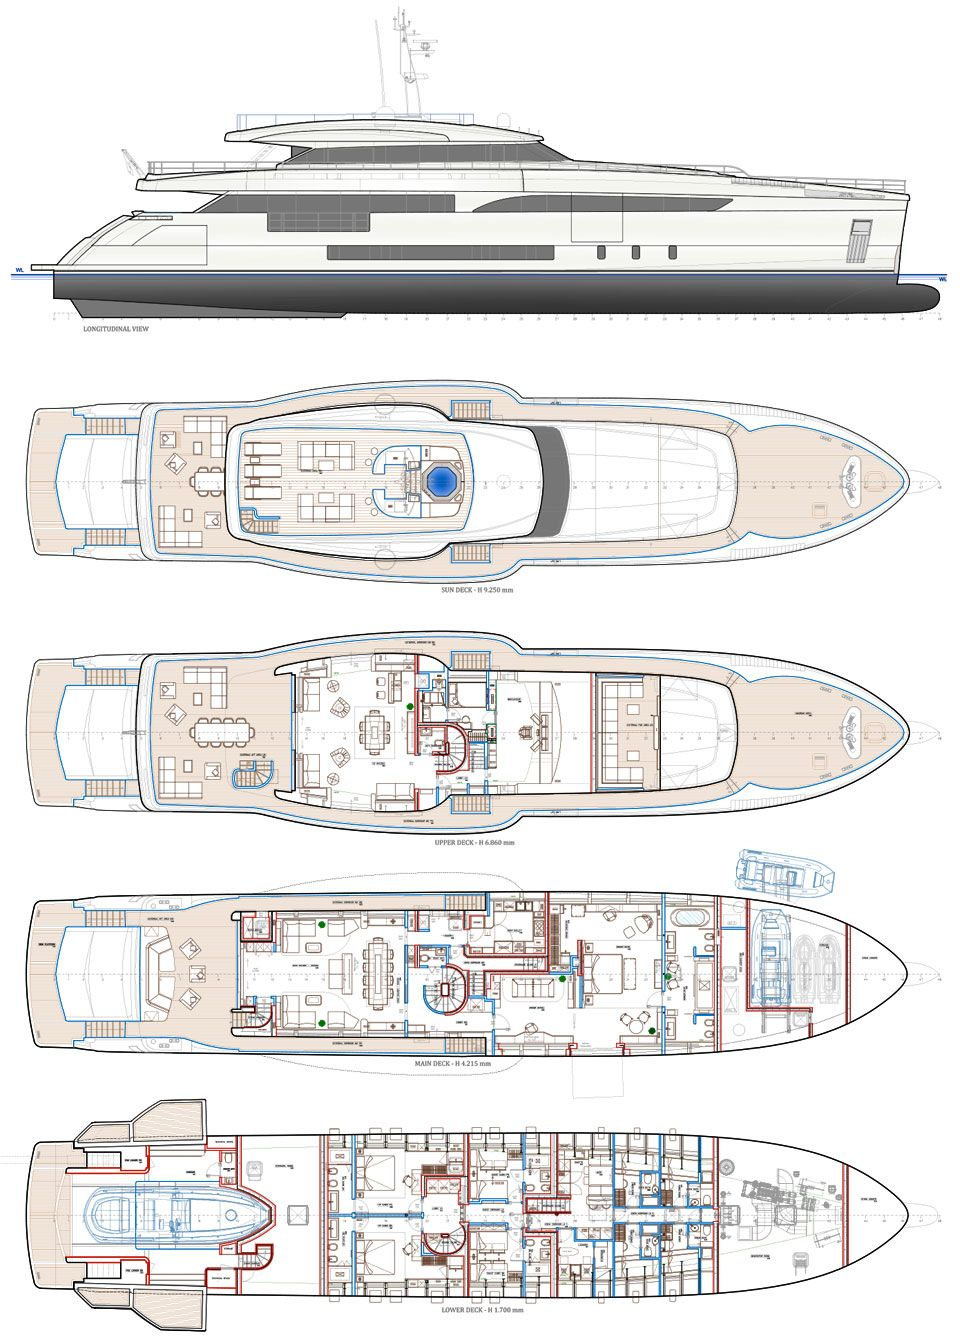 Luxury Yacht Engine Room: 150pl.jpg (960×1337) (With Images)